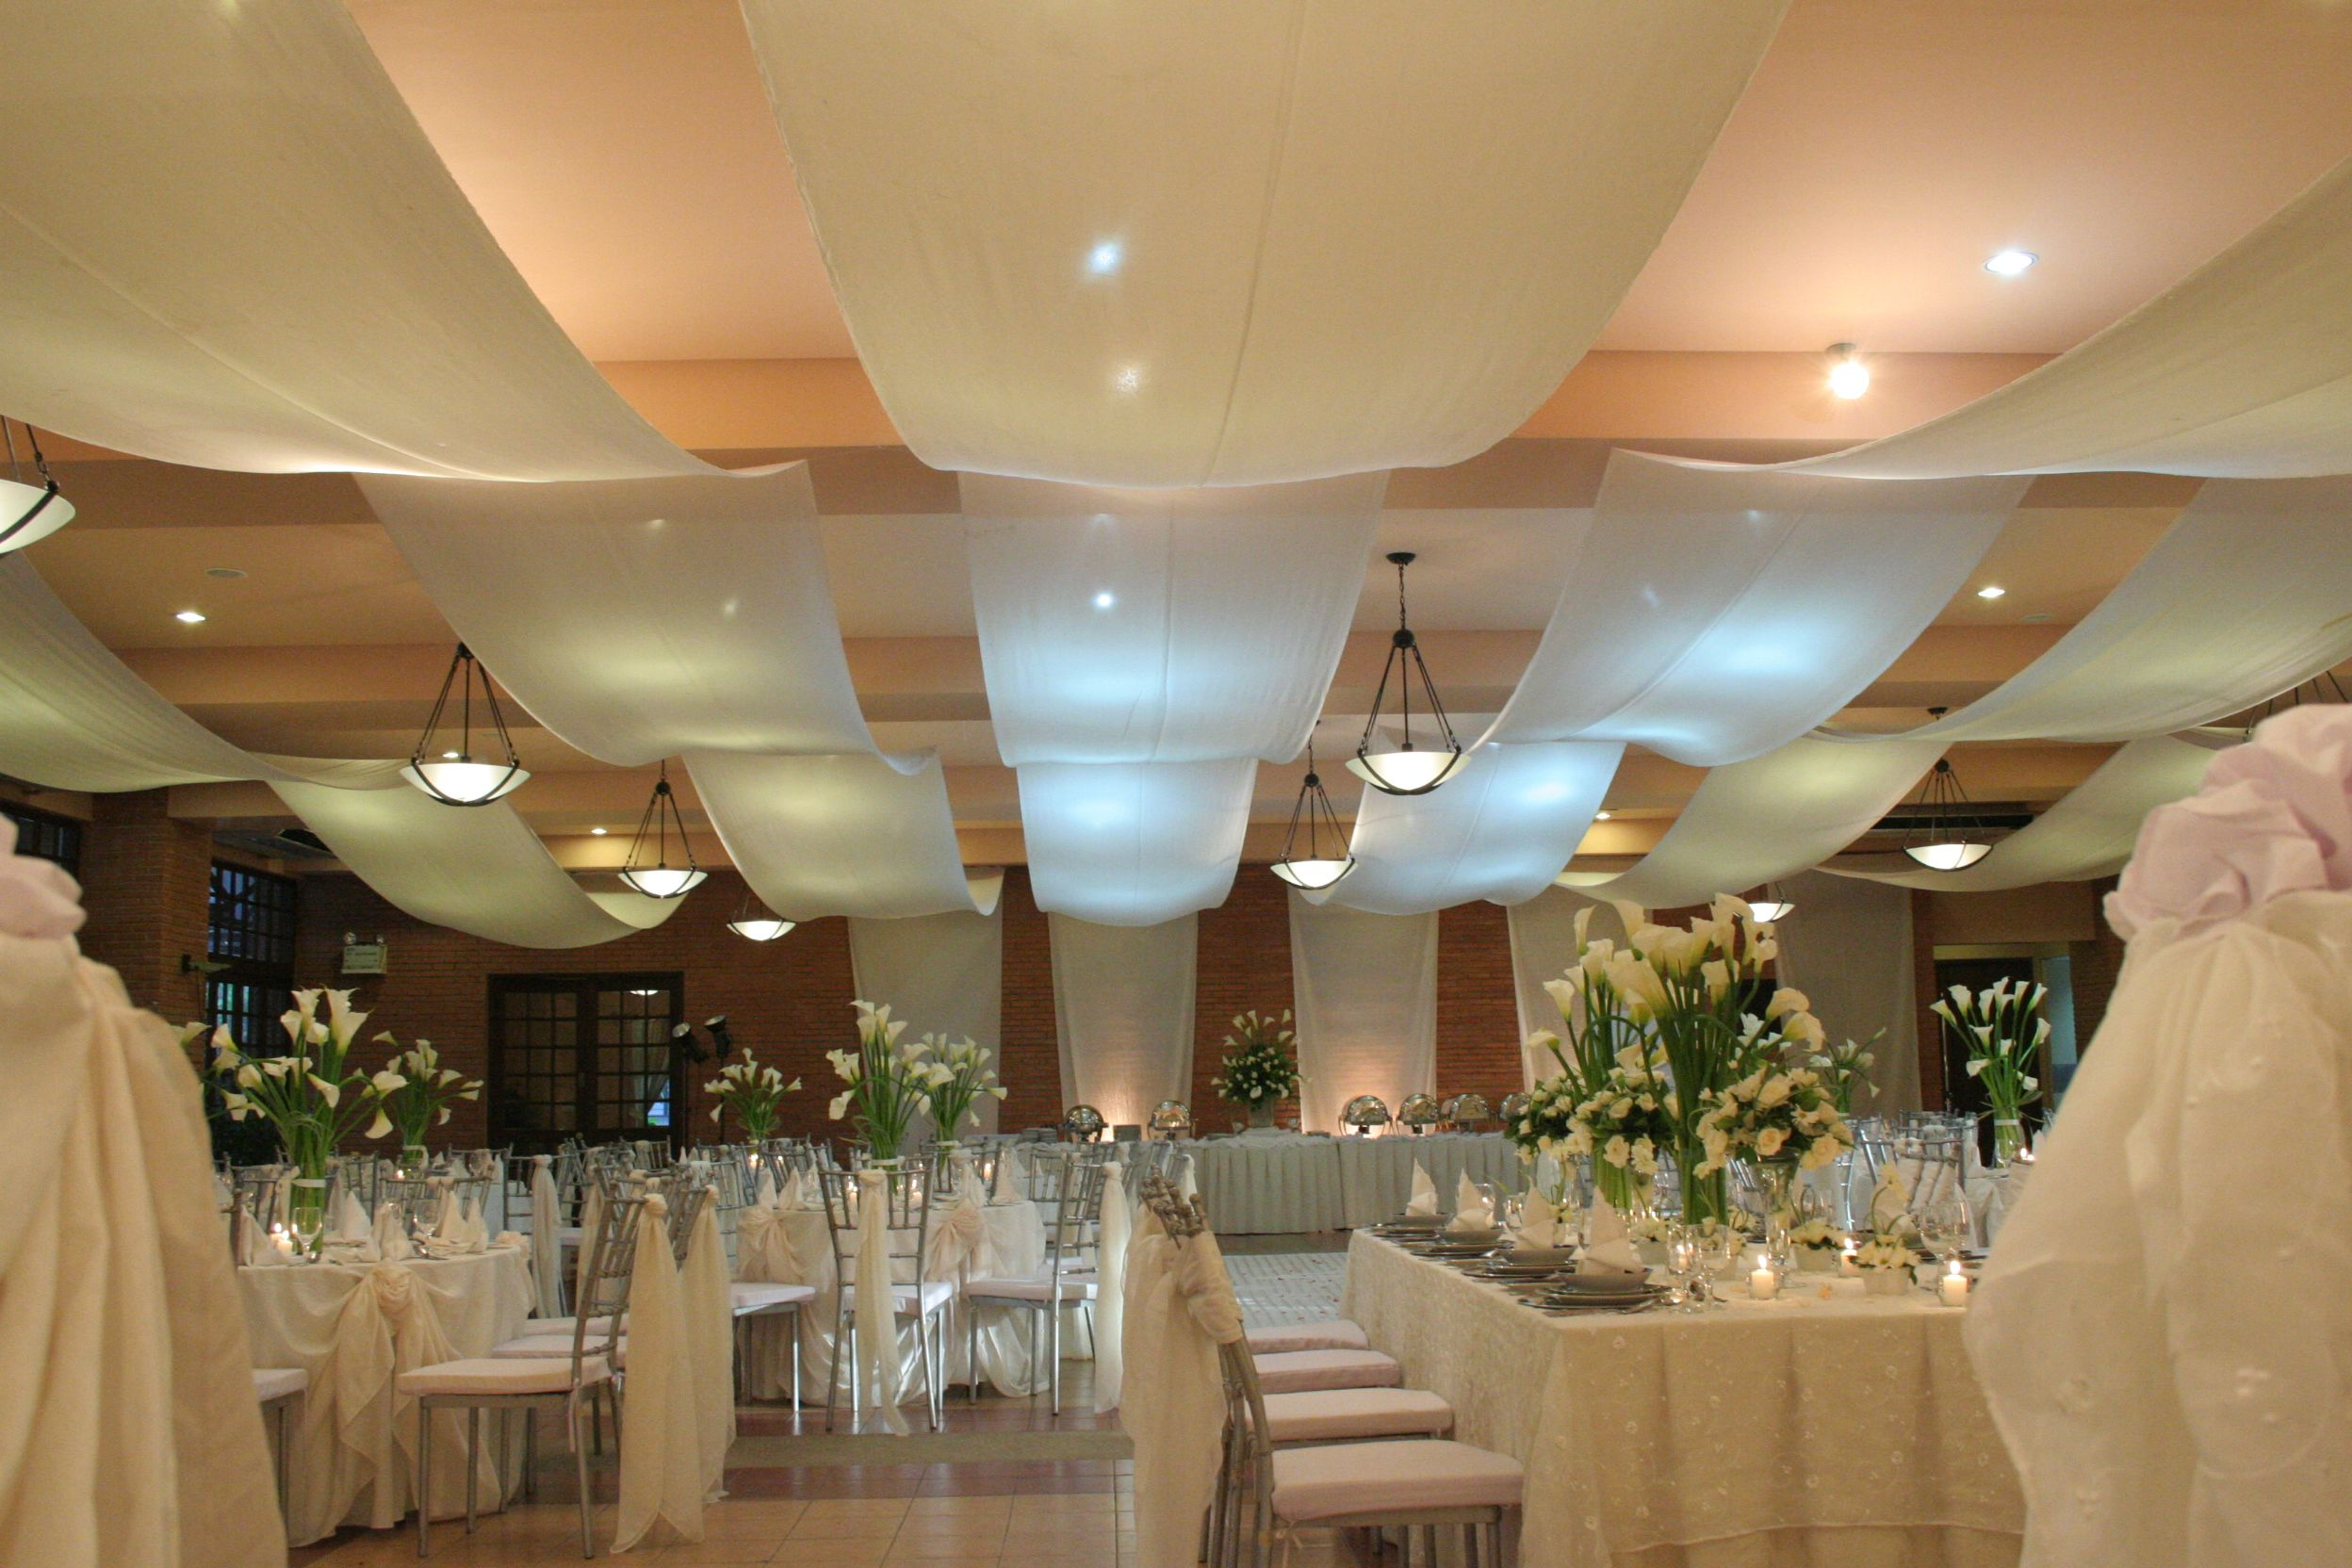 your up white delivery ceiling fixtures drapes design drape high or room rentals around how with removal uprights for the uplighting ccav on equipment and accent to time led production event hang set black events